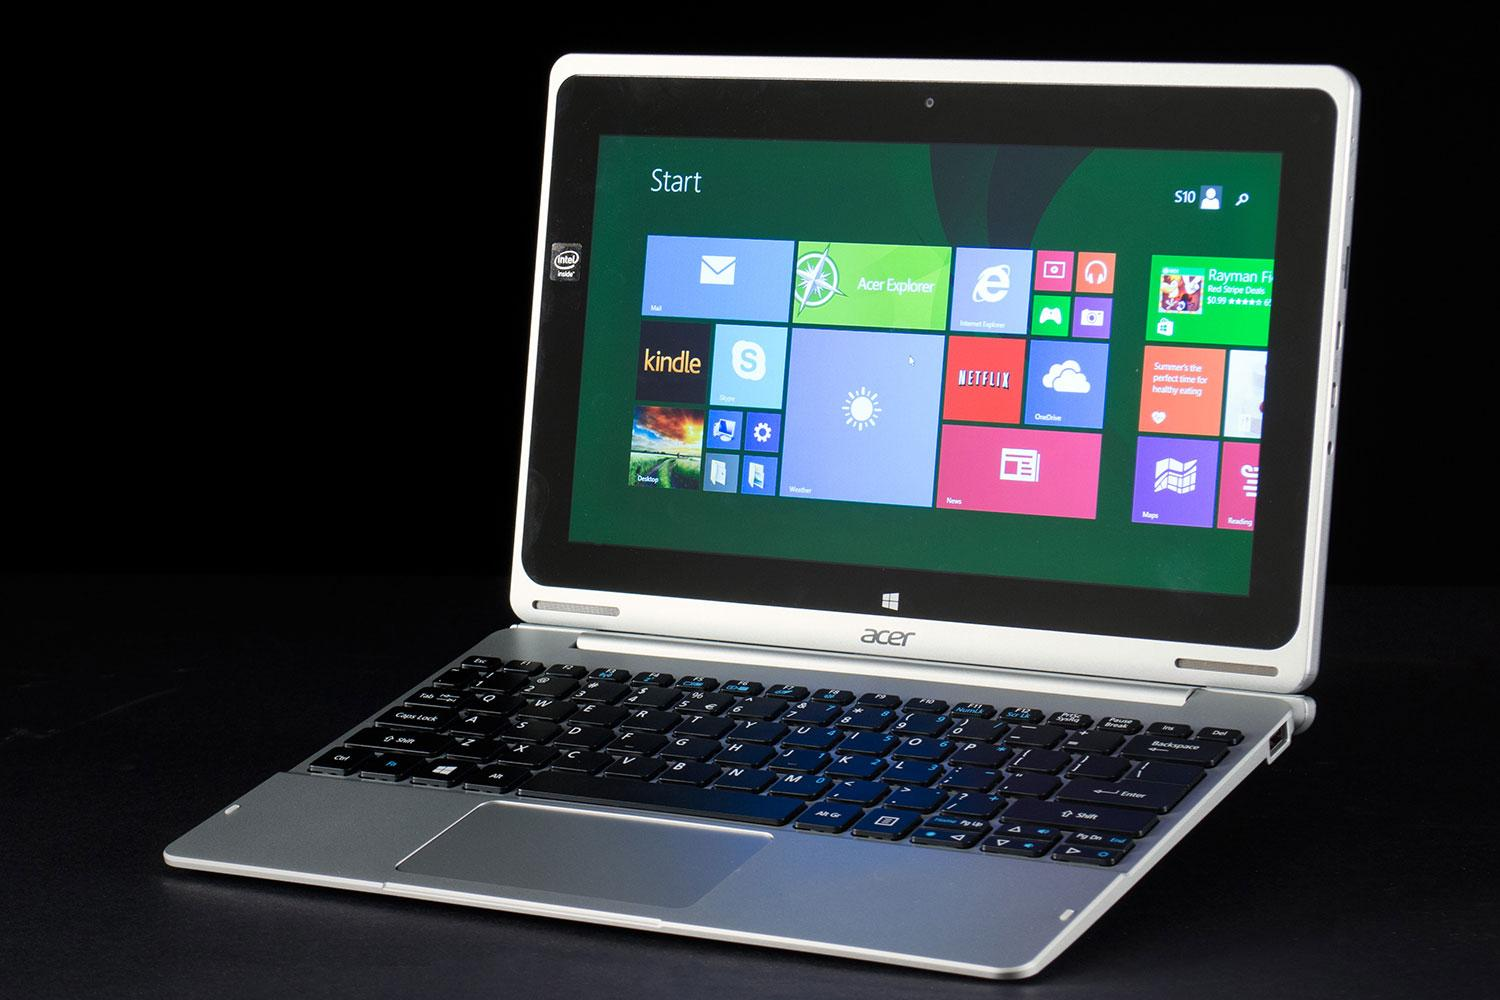 199 Windows 8 Laptops To Allegedly Launch This Fall